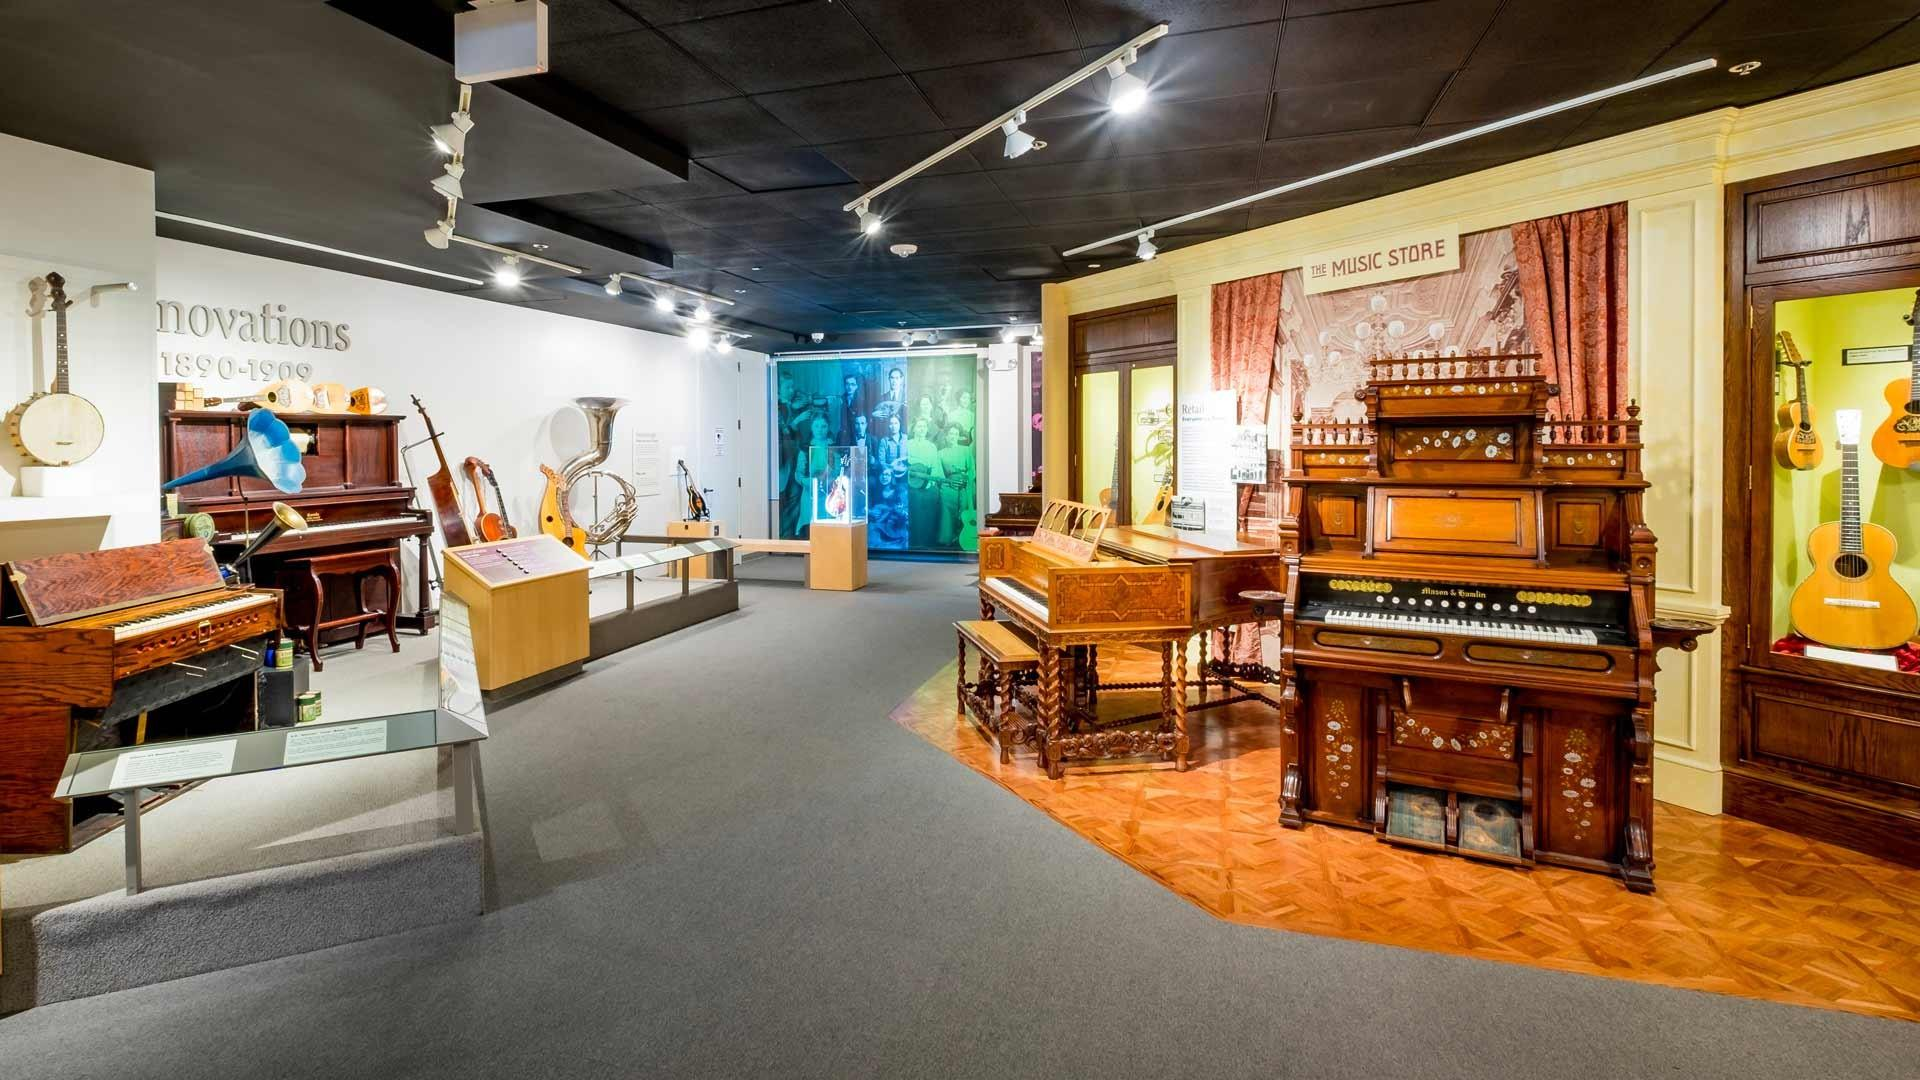 An image of Gallery 1 of the Museum of Making Music